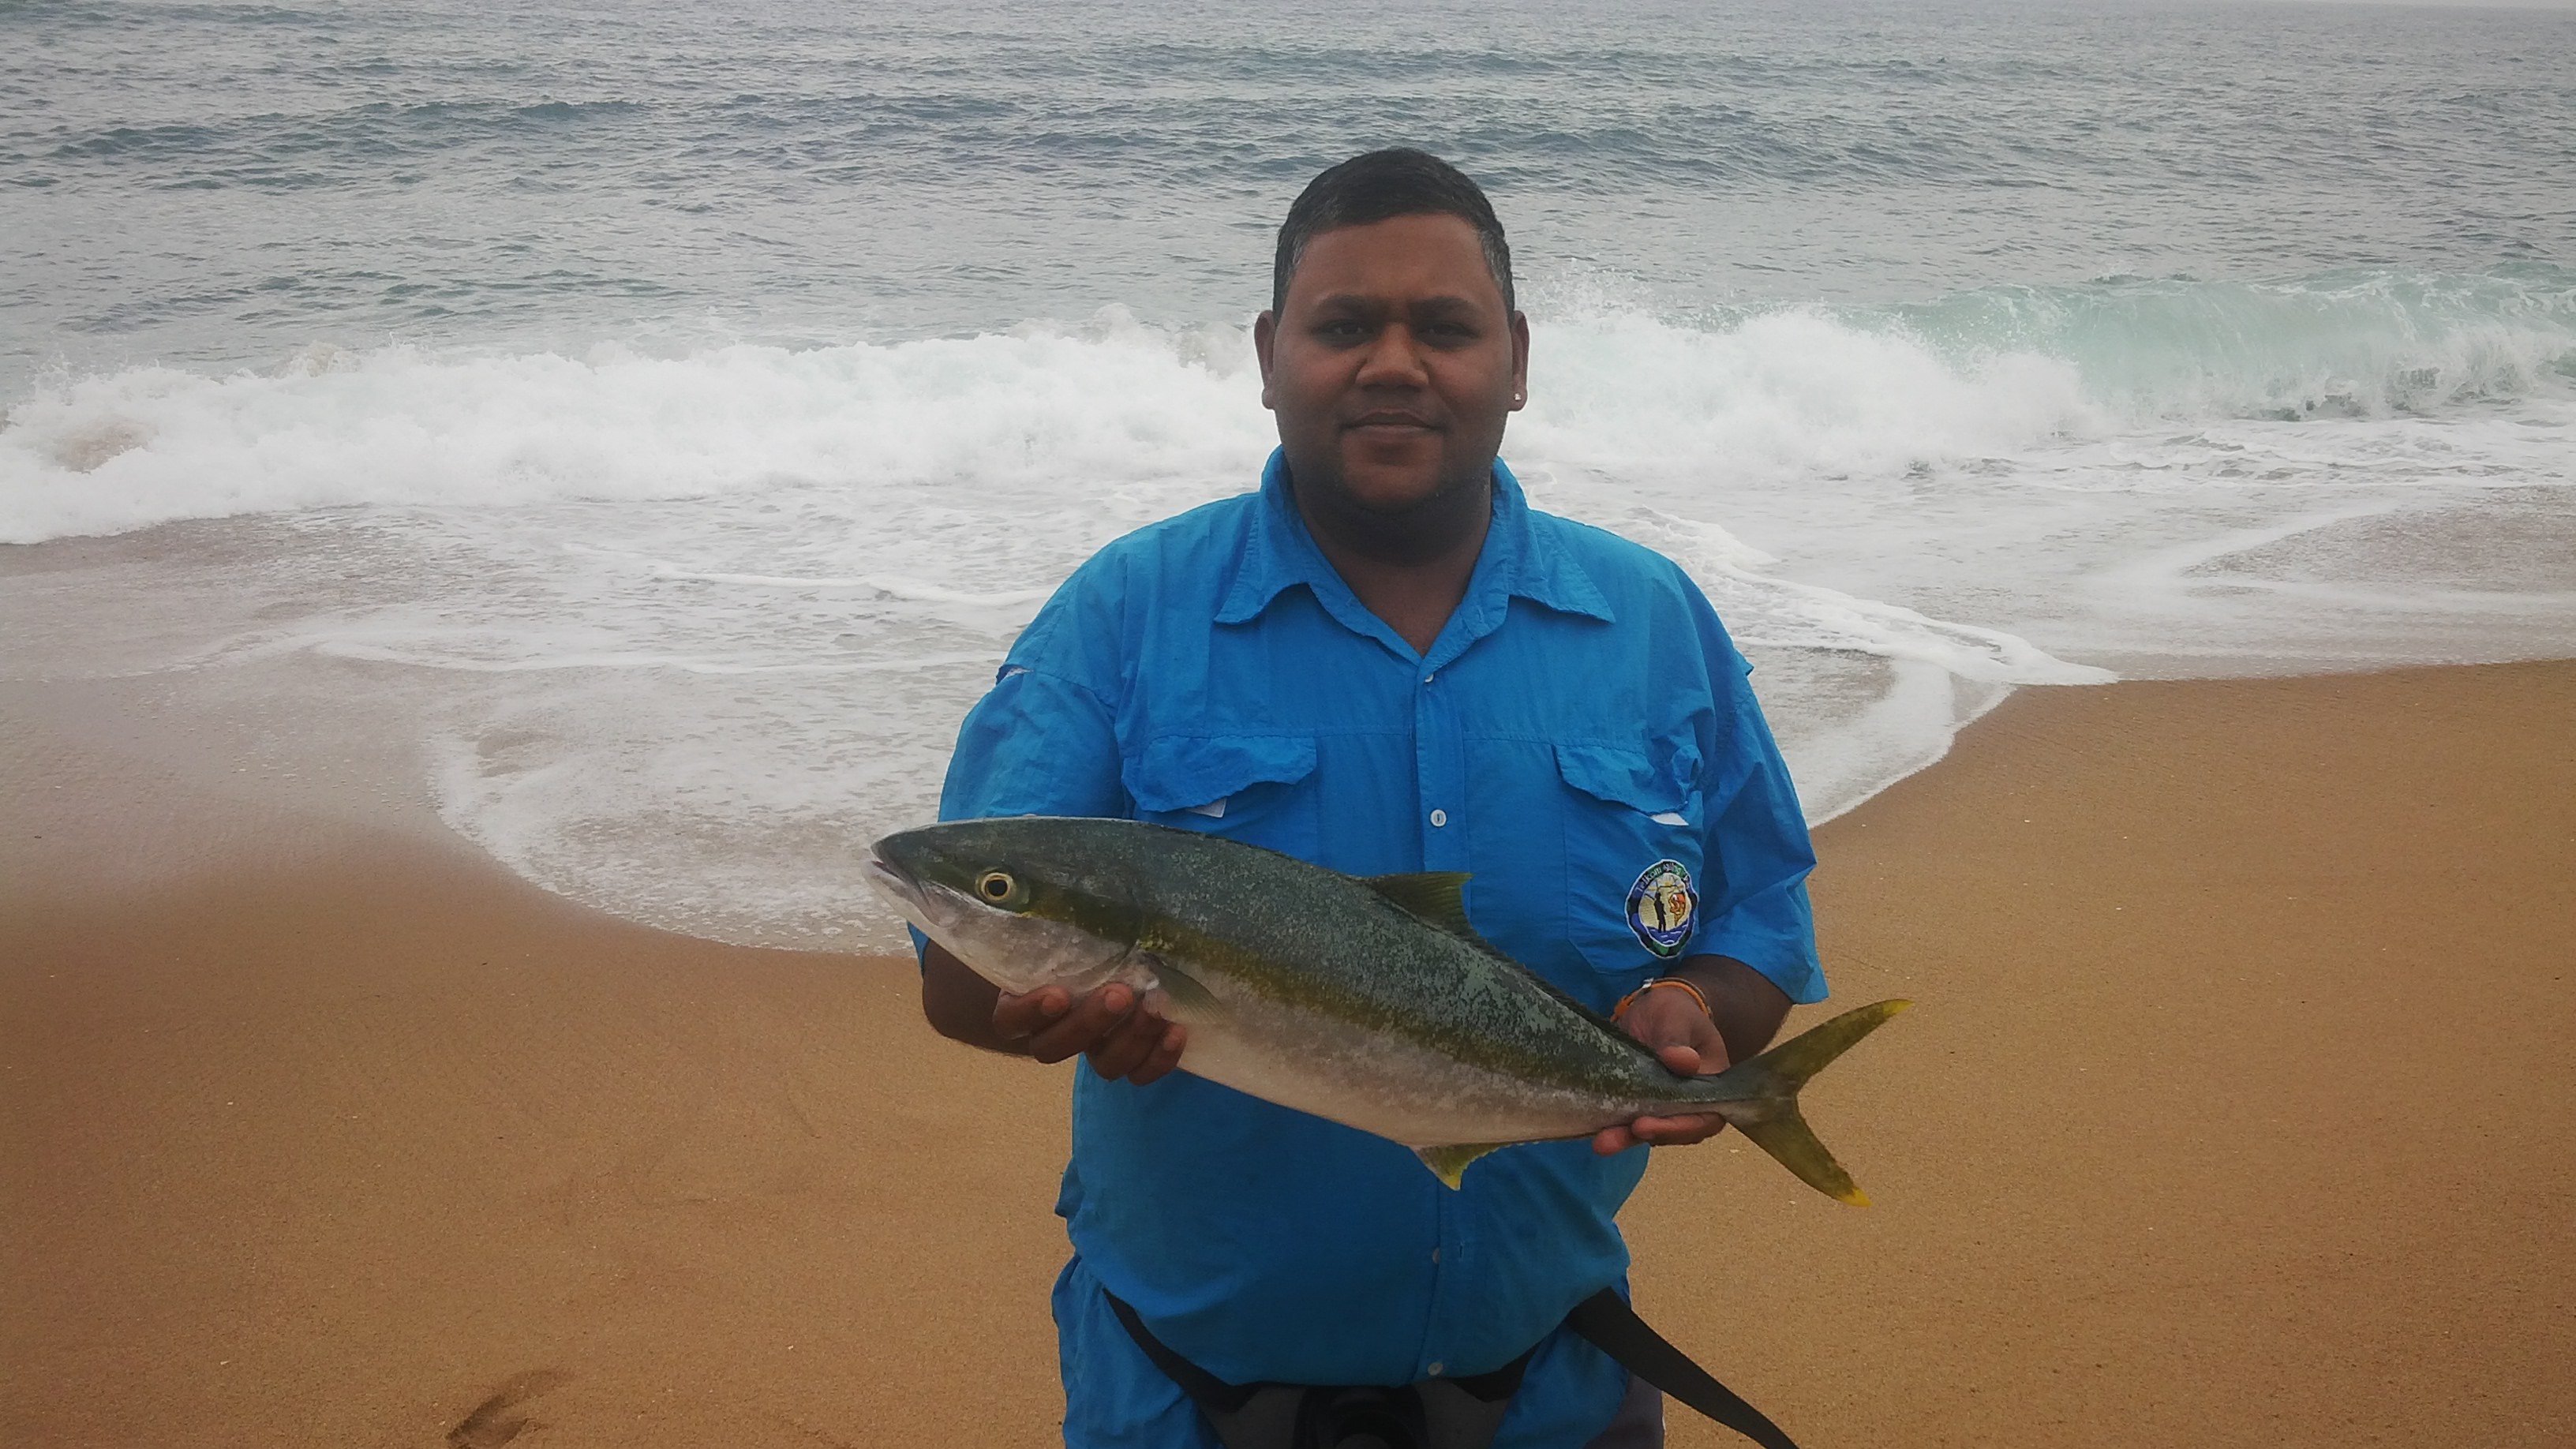 Yellowtail 2.55kg caught at Lamercy beach on Chokka and Sardine. IMG_20141123_151057